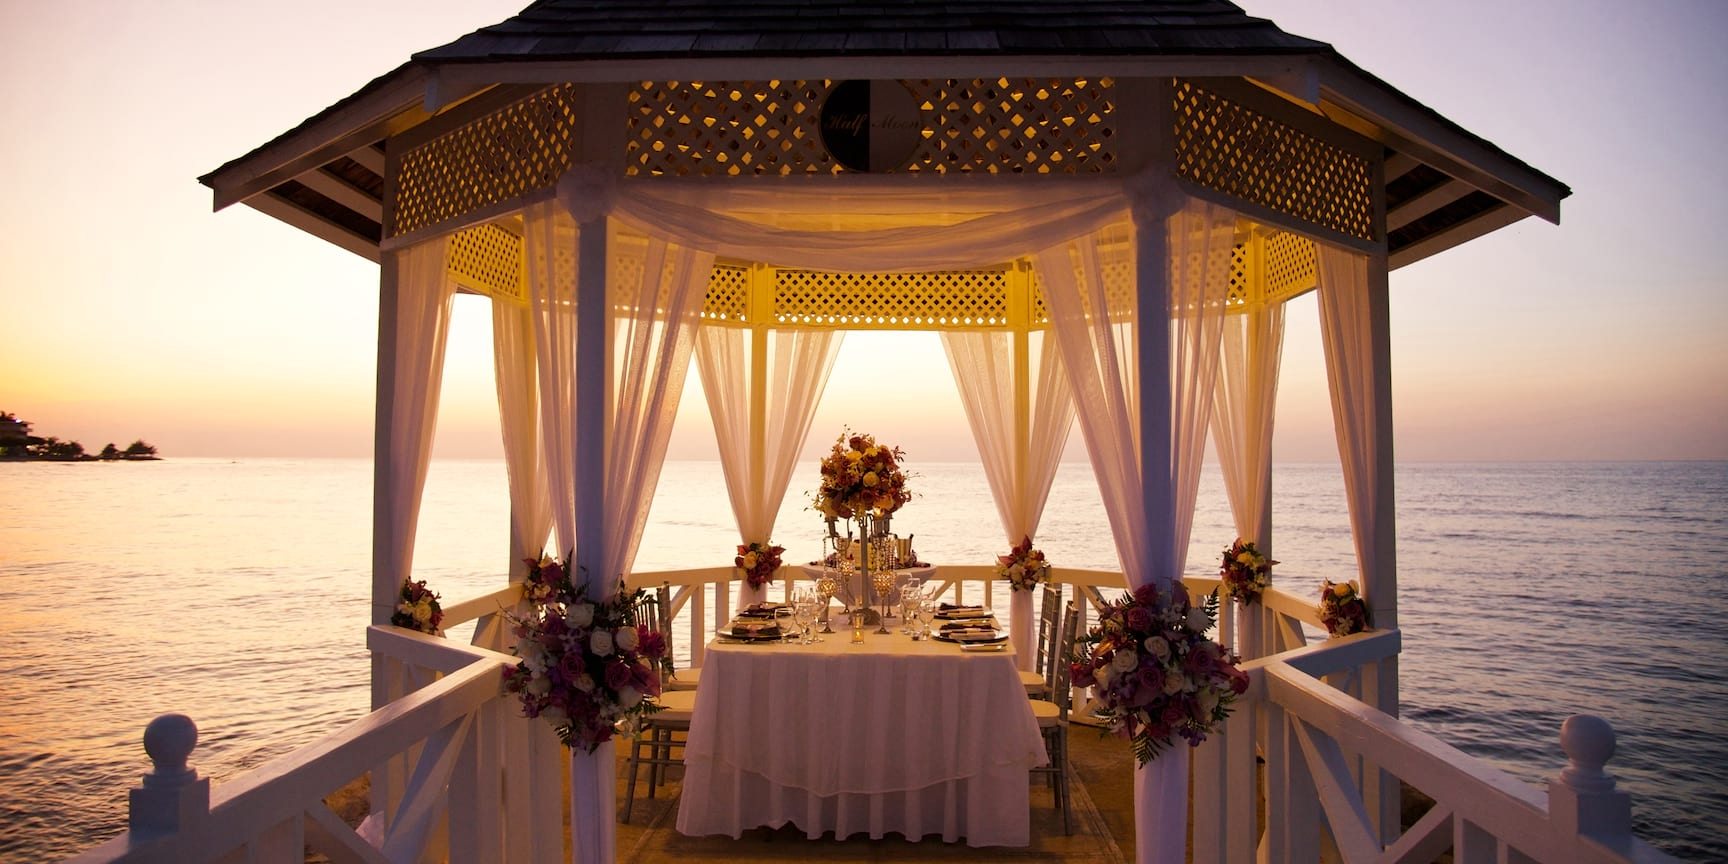 HalfMoon_wedding_gazebo